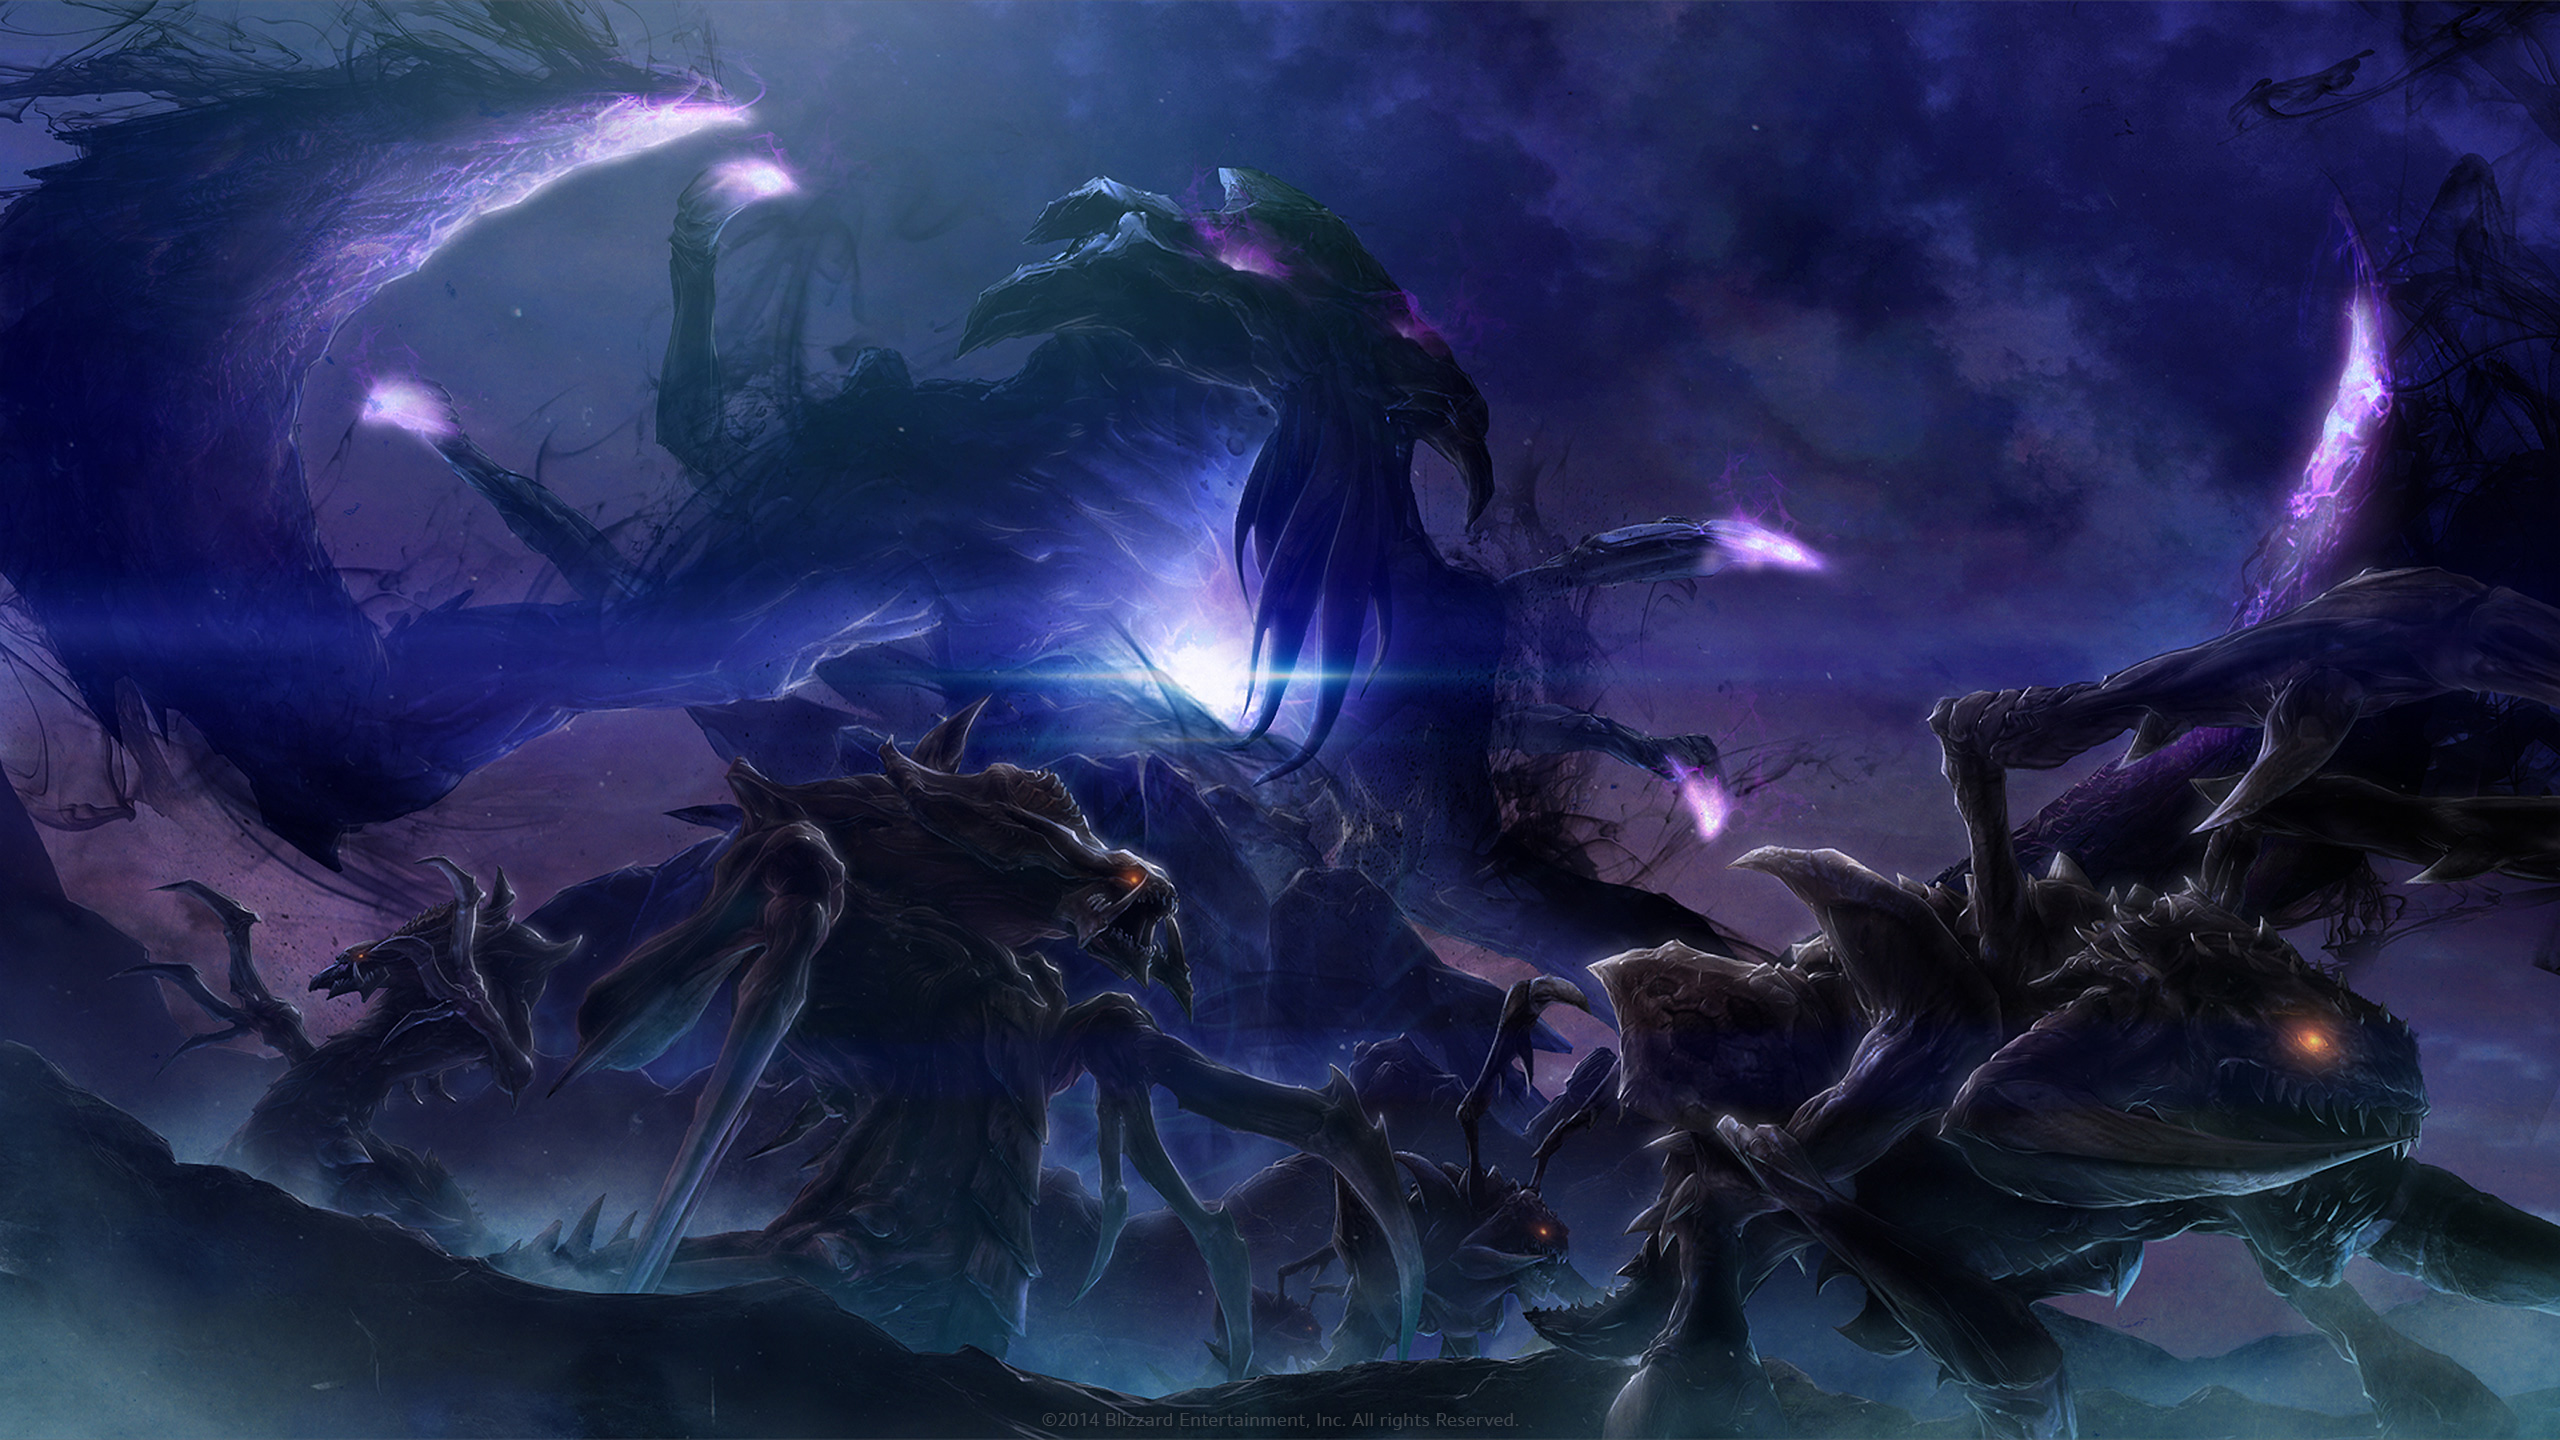 Starcraft Heart Of The Swarm HD Wallpaper Background Image